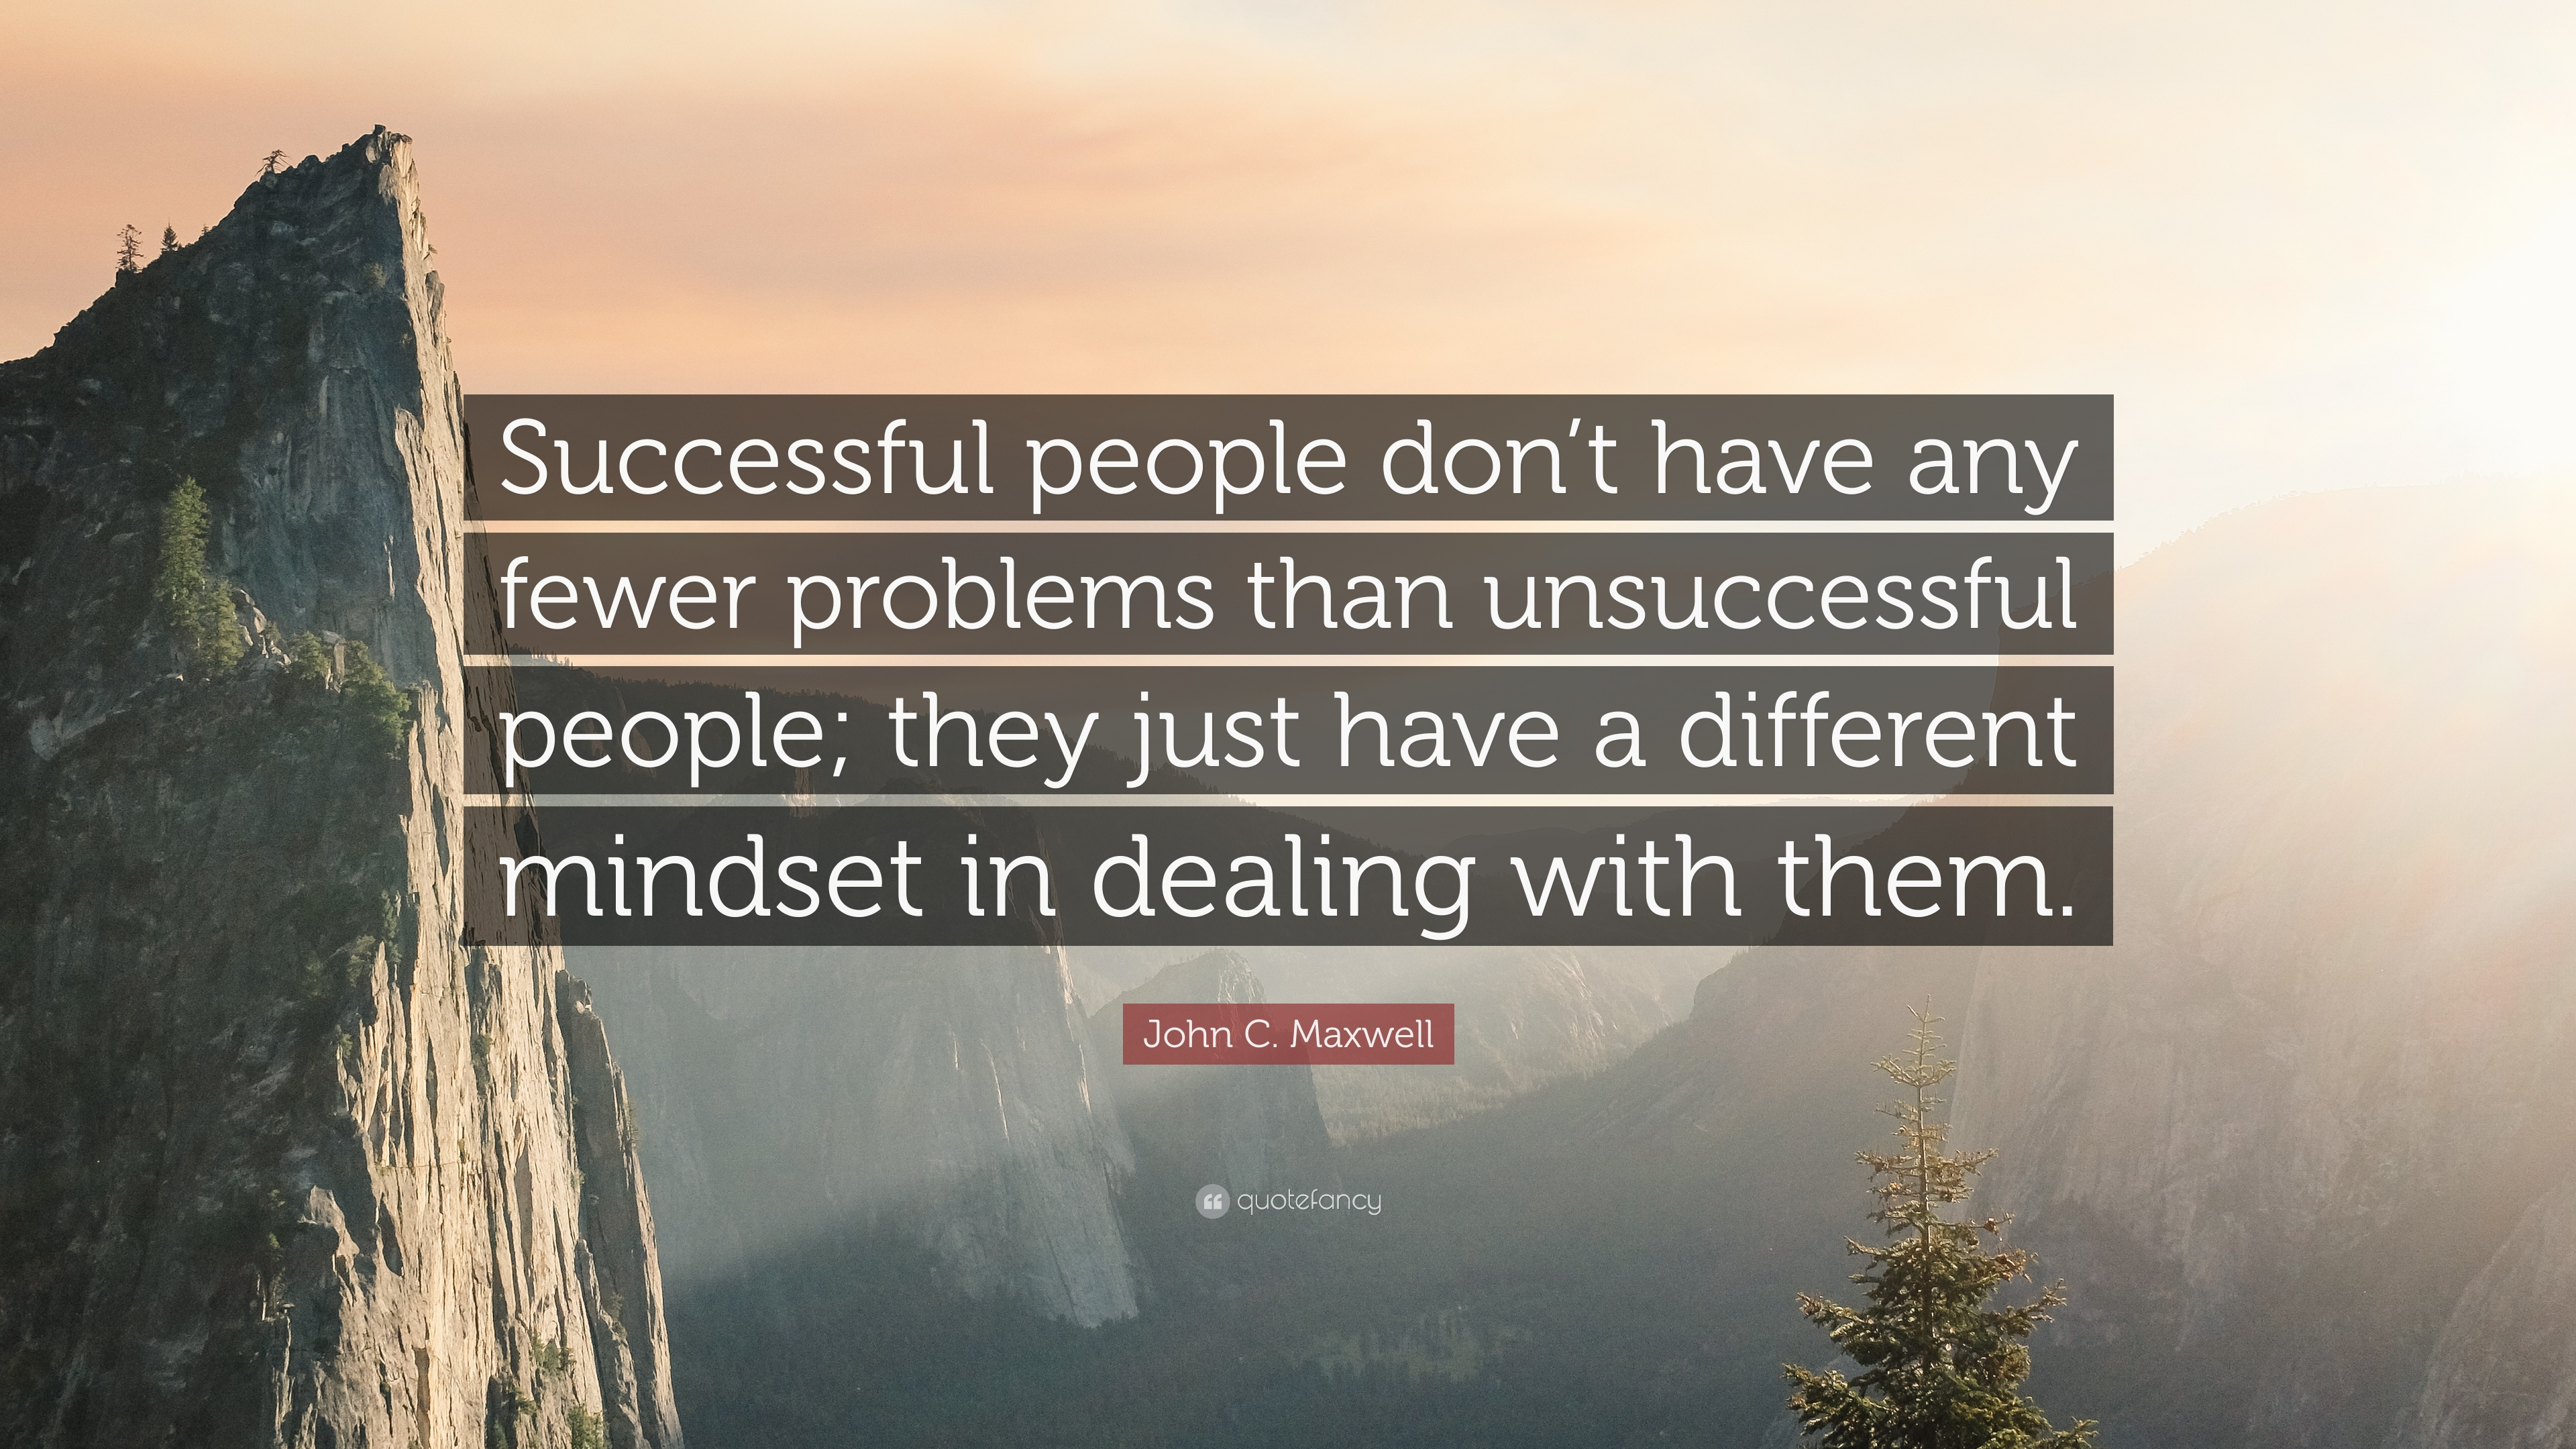 John C Maxwell Quote Successful People Dont Have Any Fewer